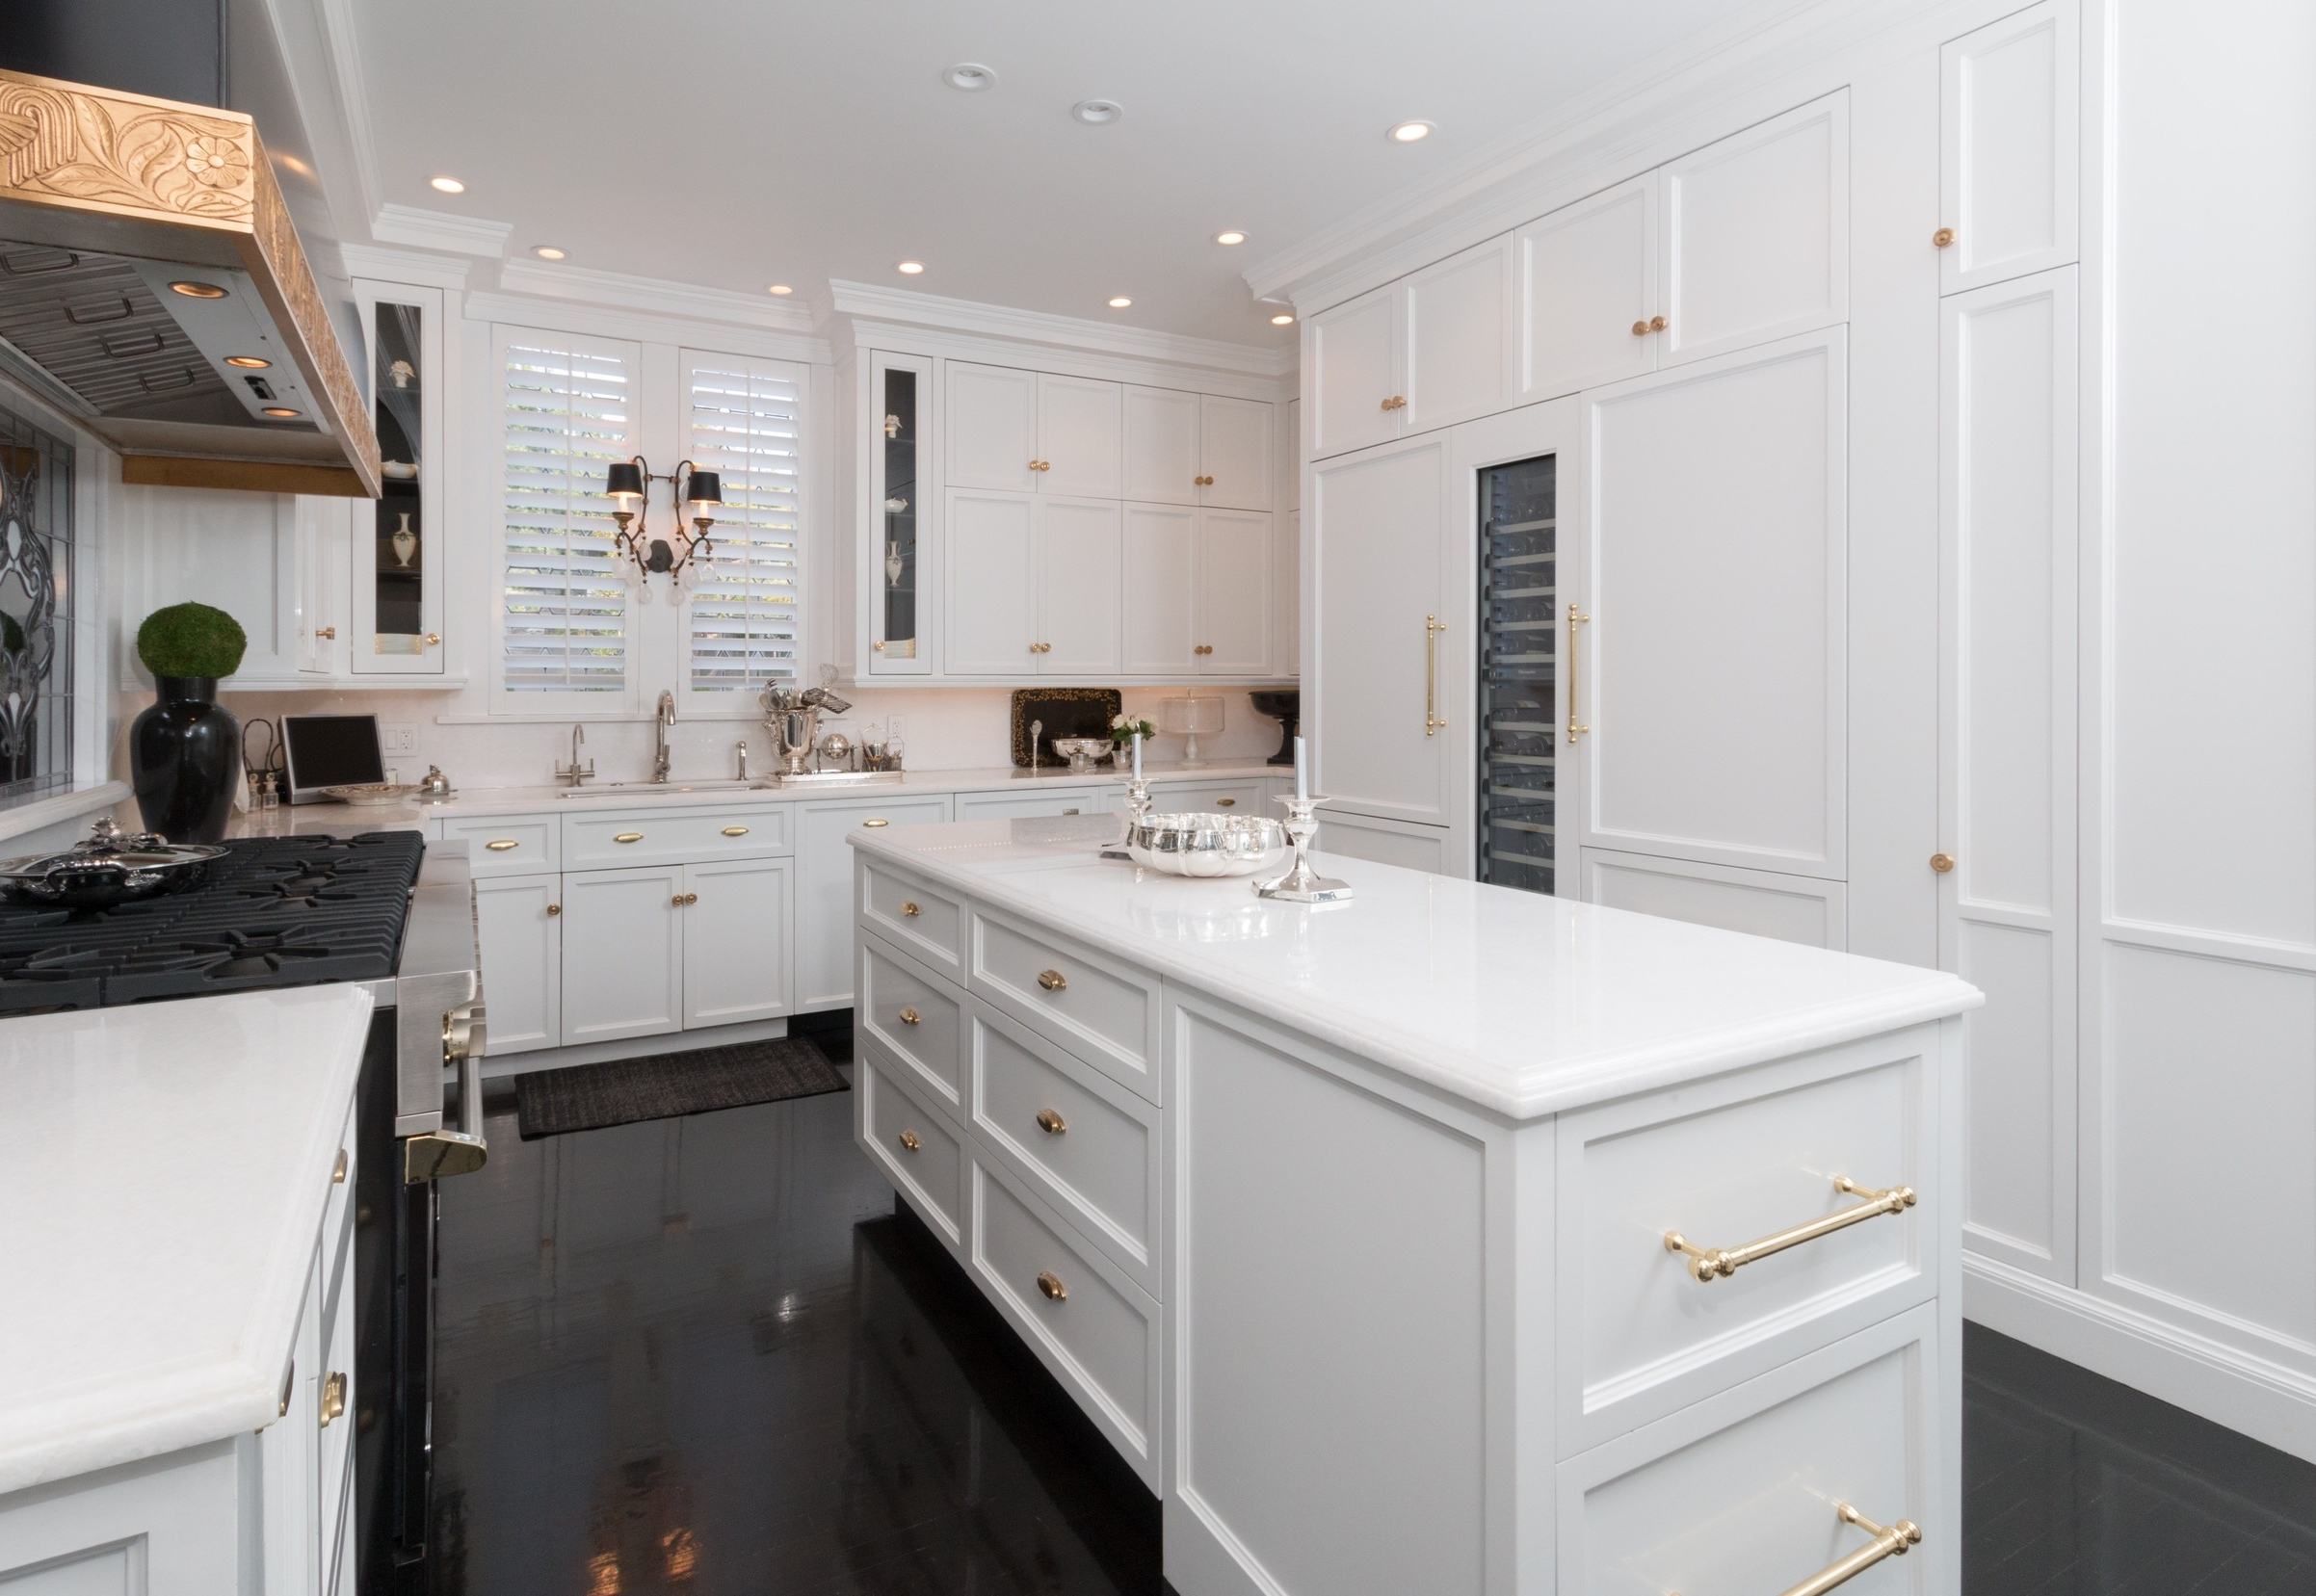 Devoted to the art of fine craftsmanship, Bay Design & Build, Inc. lends expertise and artistry to every carpentry project. Specializing in construction and renovation, we fashion exceptional spaces combining both style and function.